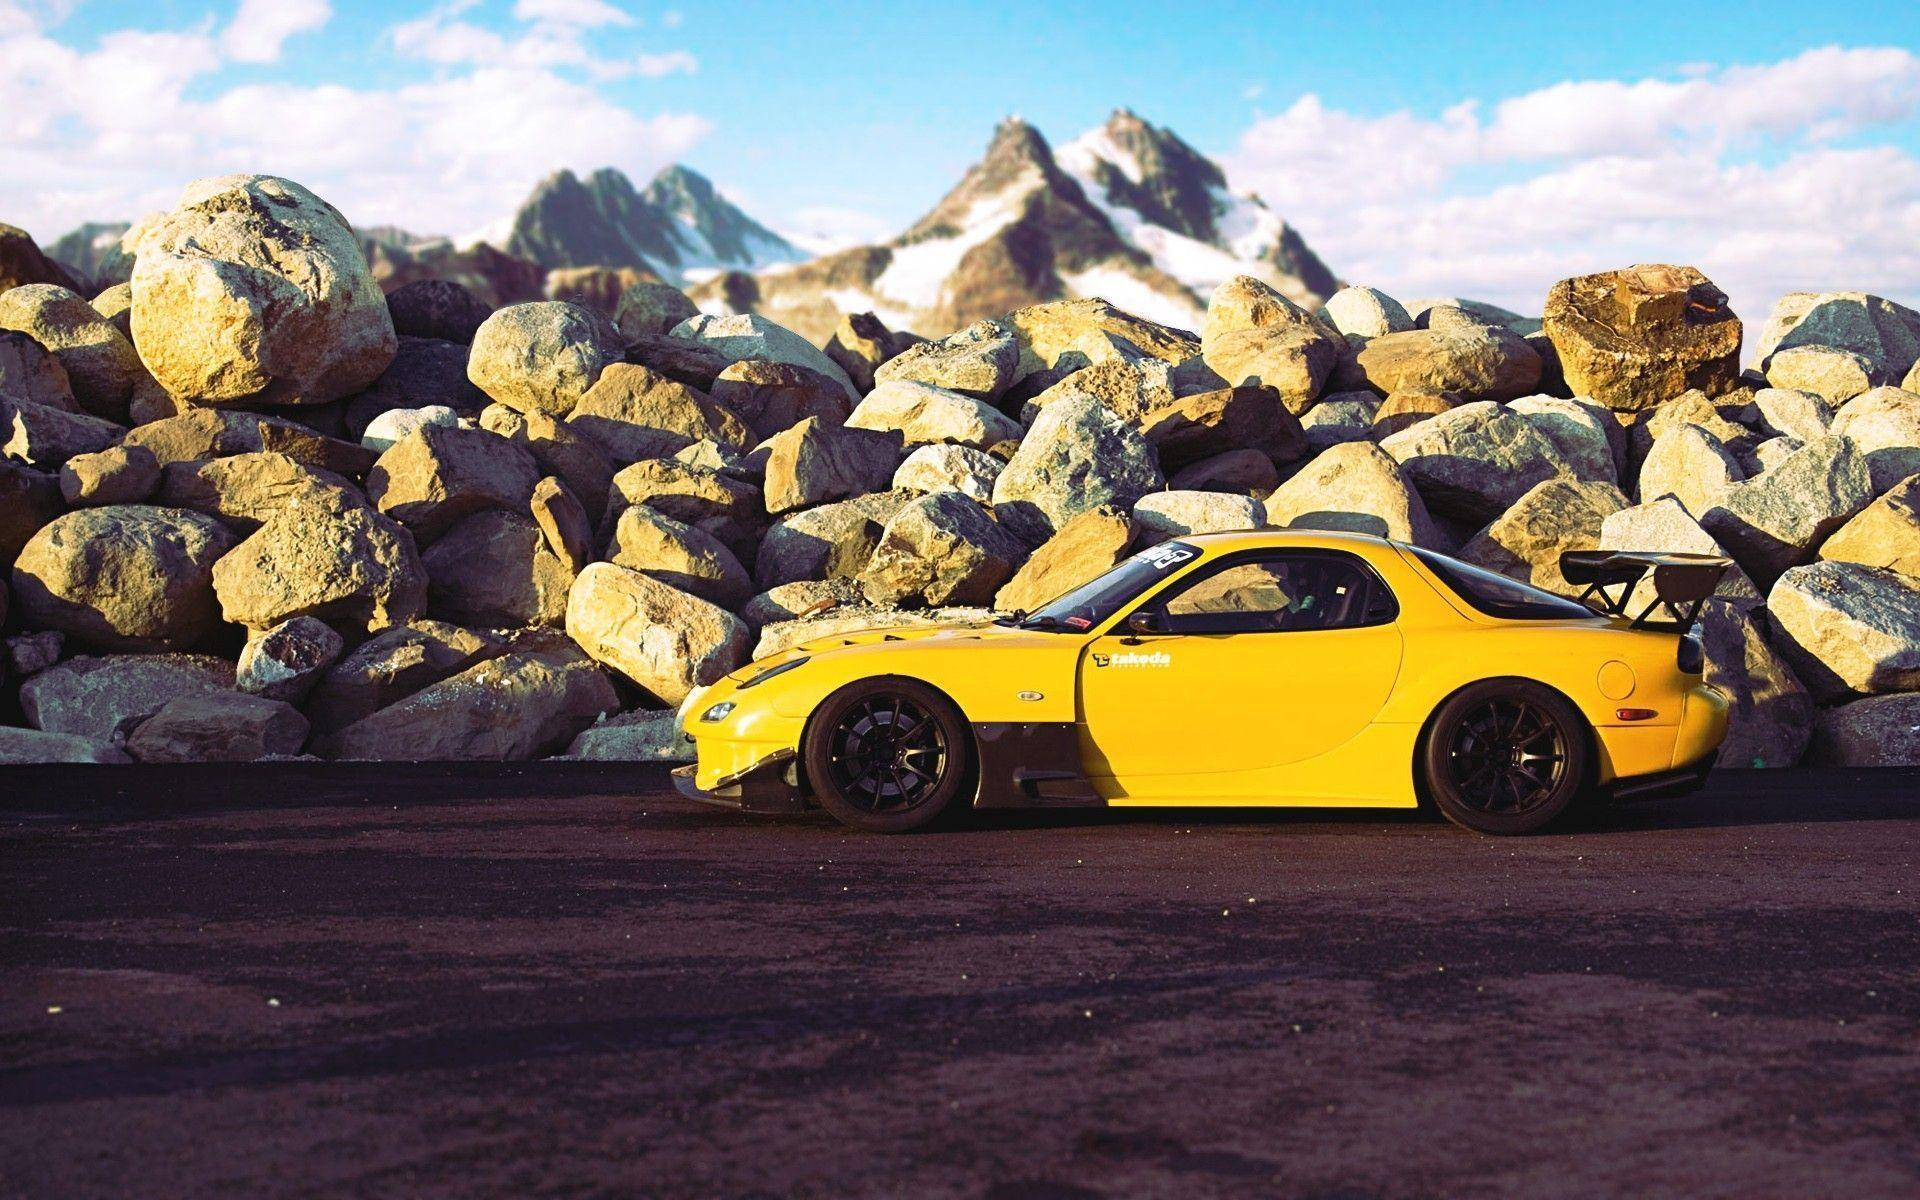 Wallpapers Auto, Cars, Mazda Rx7, White, Tuning, Tuning Cars .